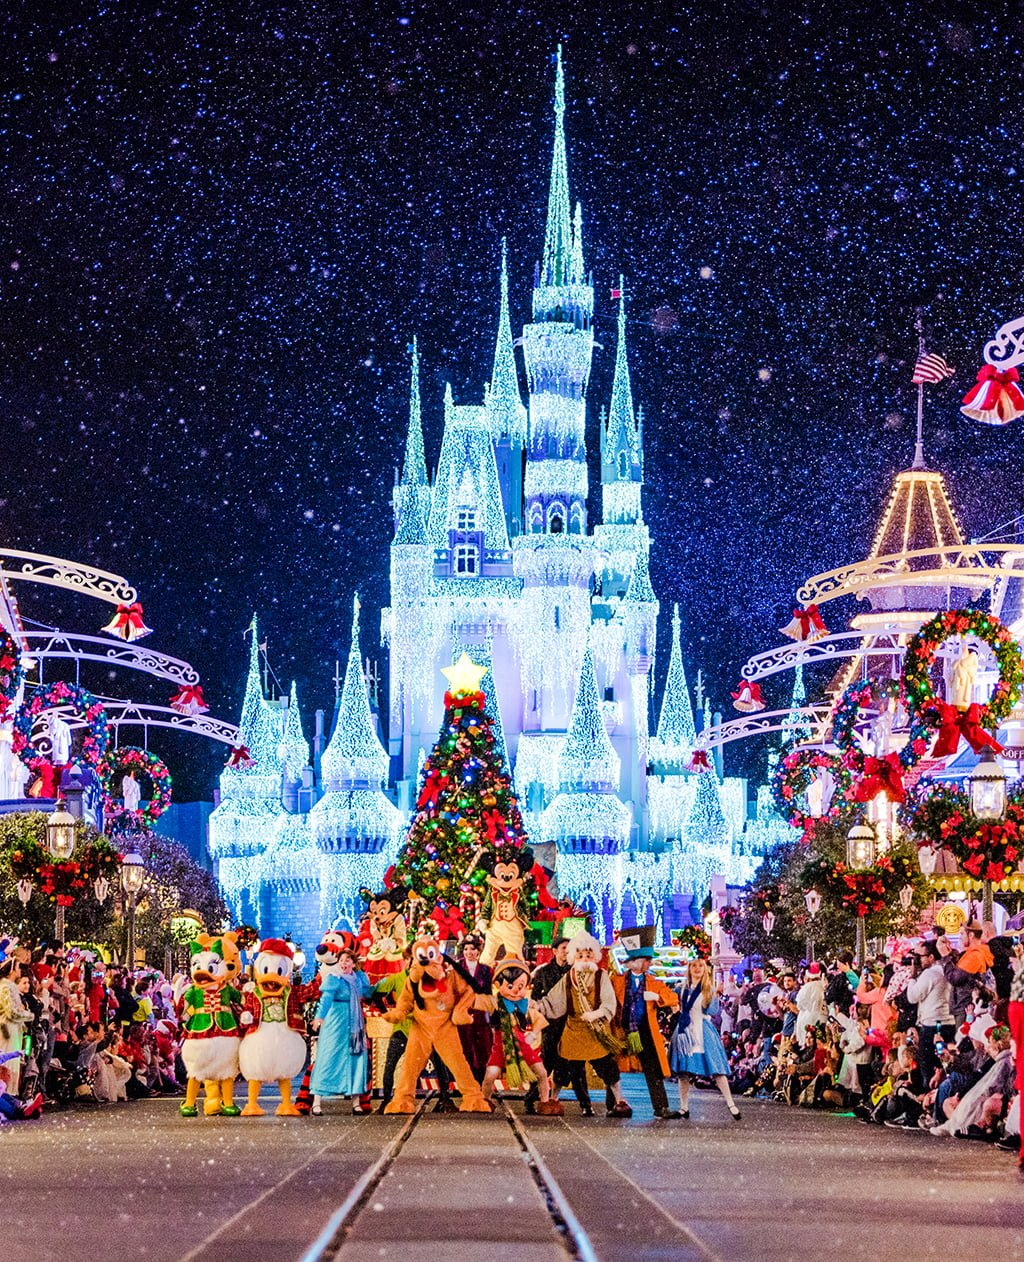 walt disney world christmas pictures 034 - Disney World Christmas Decorations 2017